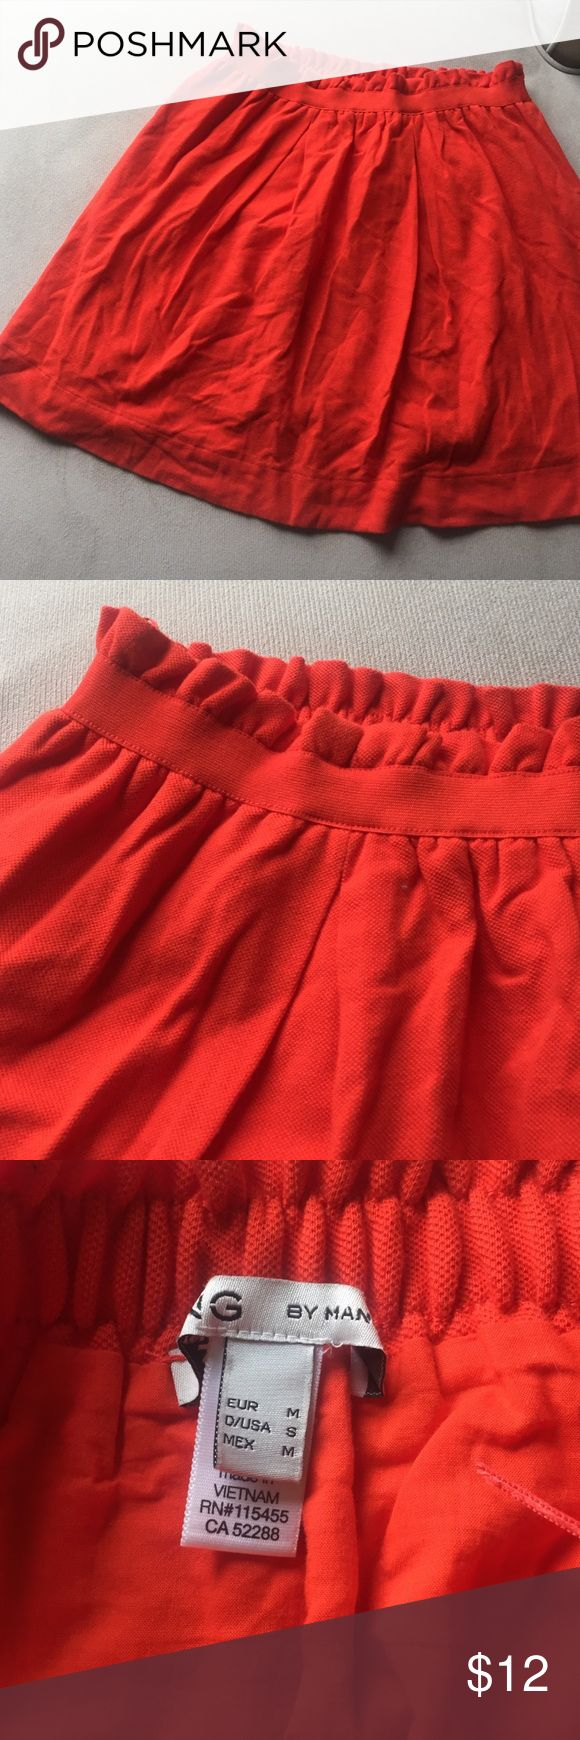 Orange cotton mini skirt The orange of the skirt is not as bright as shown in the picture for some reason I can't seem to get true color of the skirt in picture. It's a little more dulled and less blood orange. The tag says it's a size small but I think it runs big and fits more medium/large. It has elastic waistband so it stretches and can fit larger. 100% cotton so very soft. Mango Skirts Mini